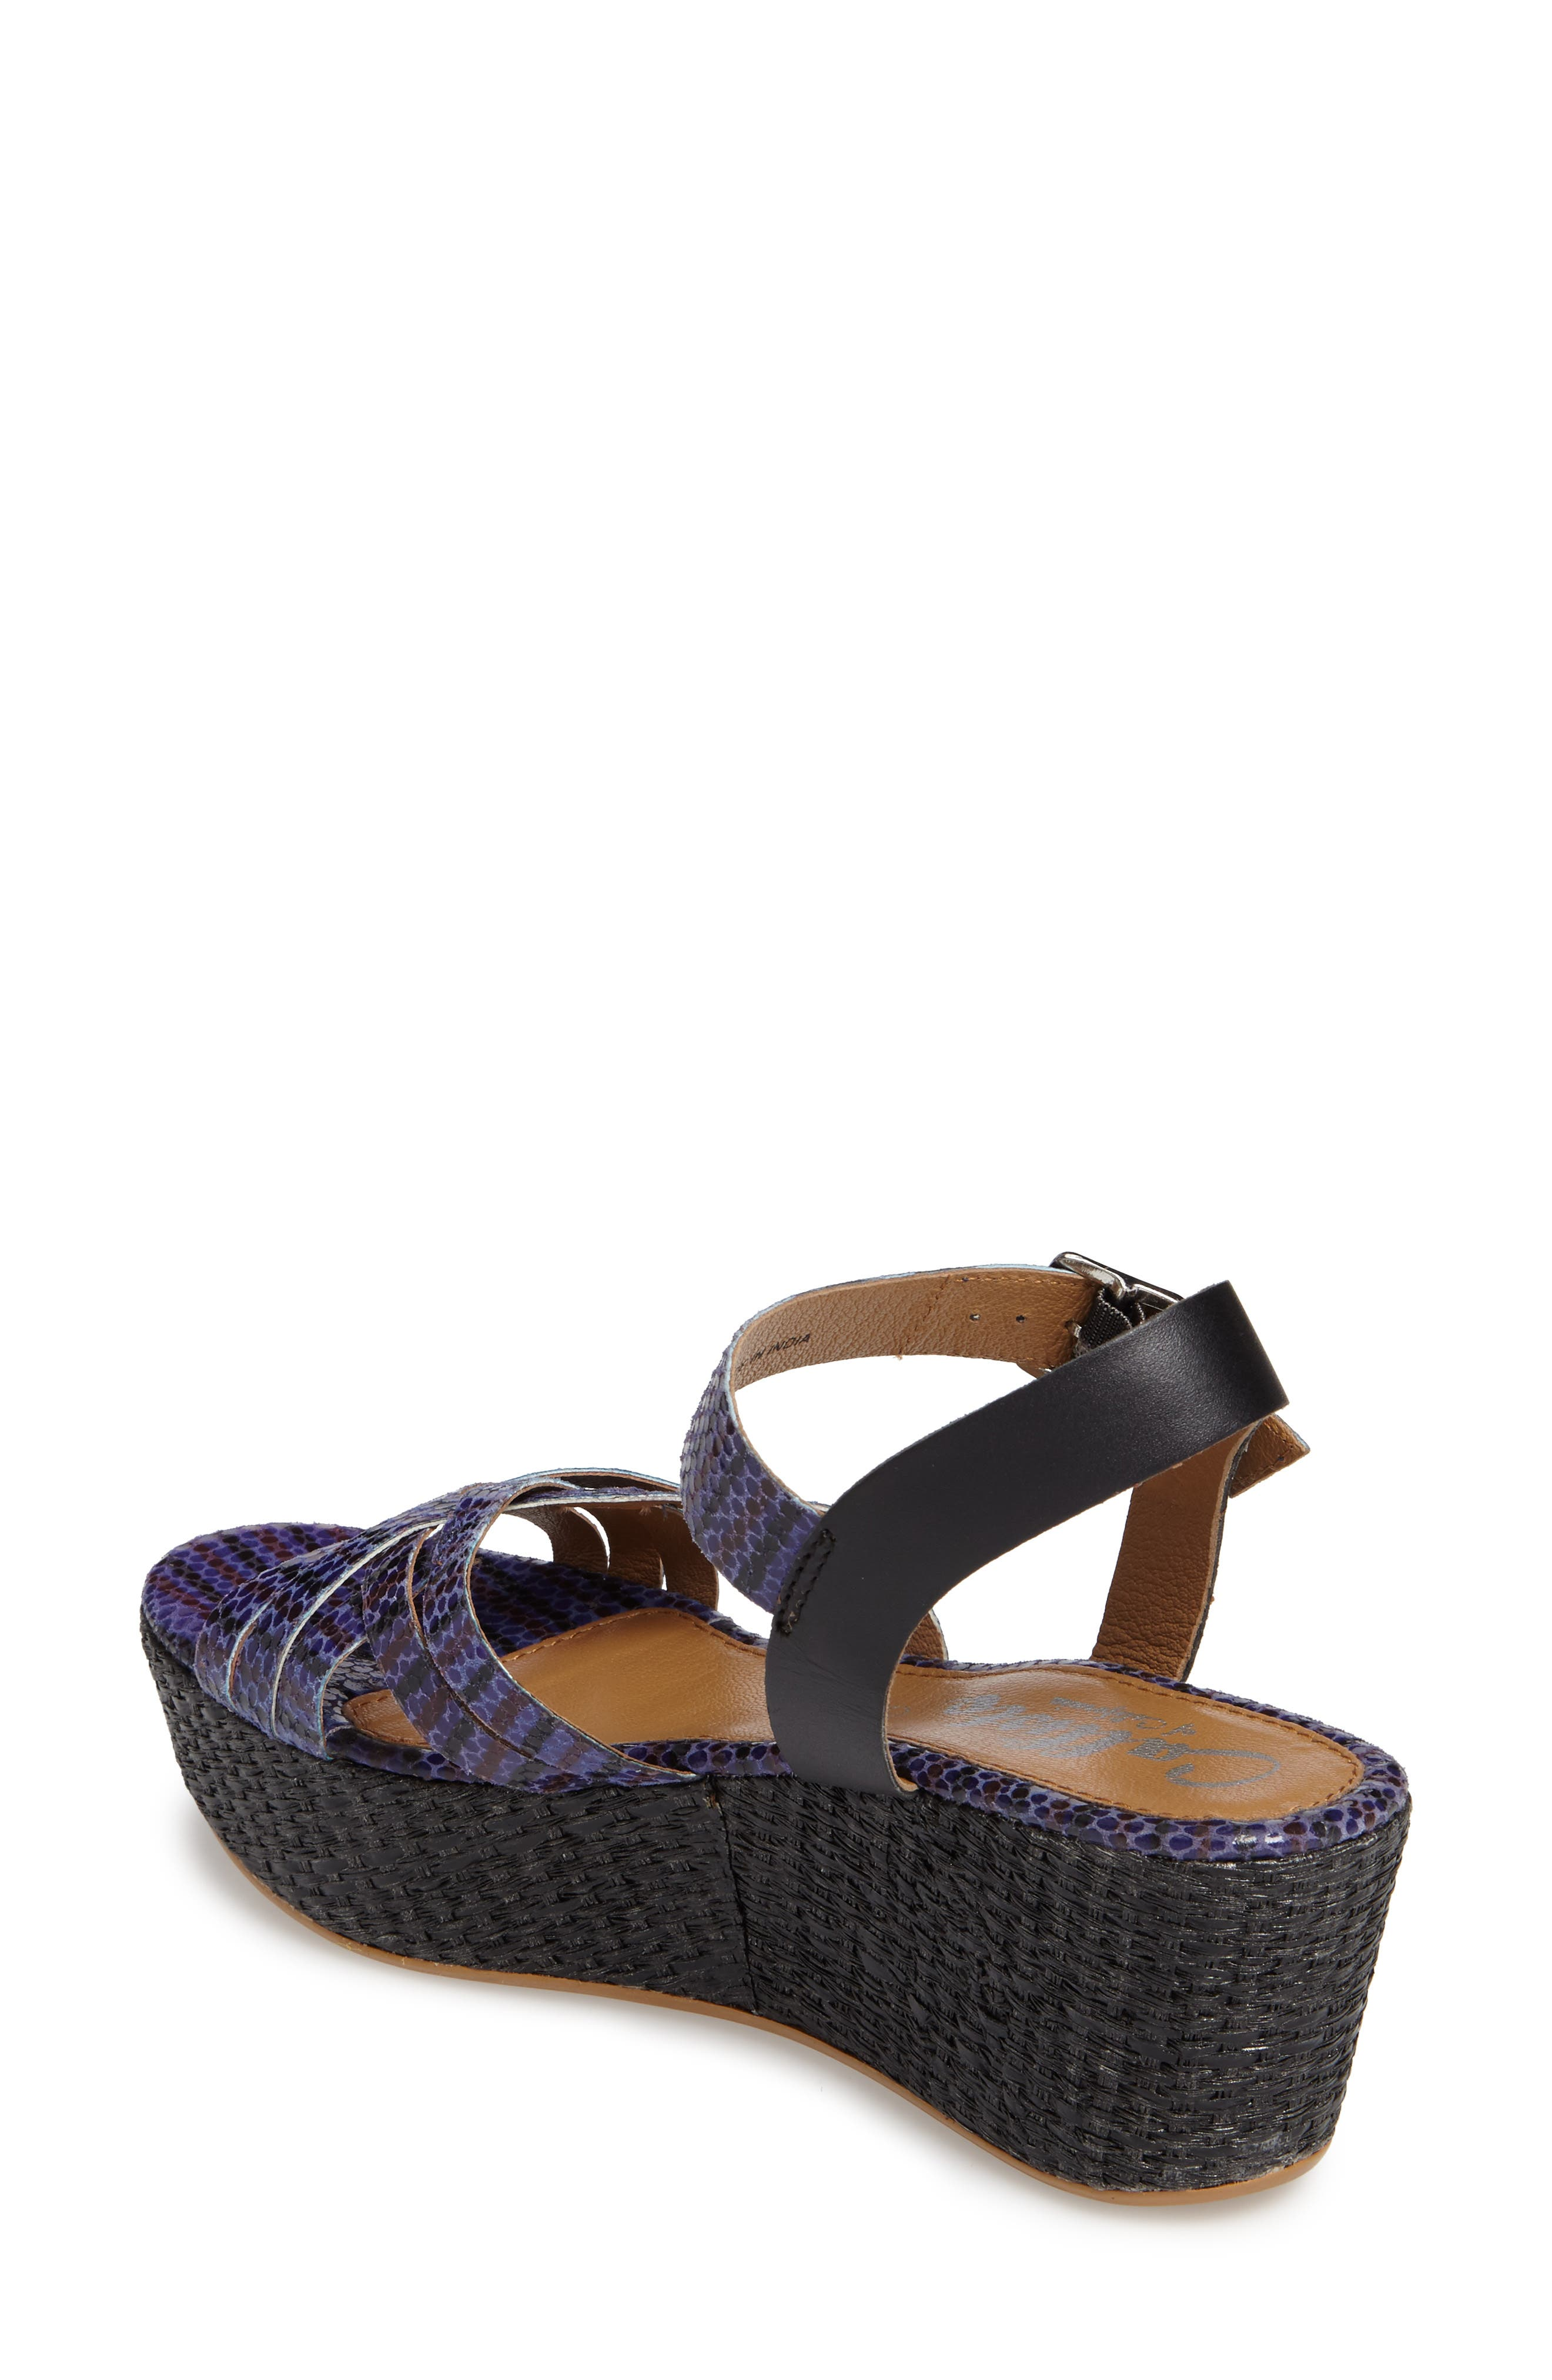 Valencia Platform Wedge Sandal,                             Alternate thumbnail 3, color,                             429